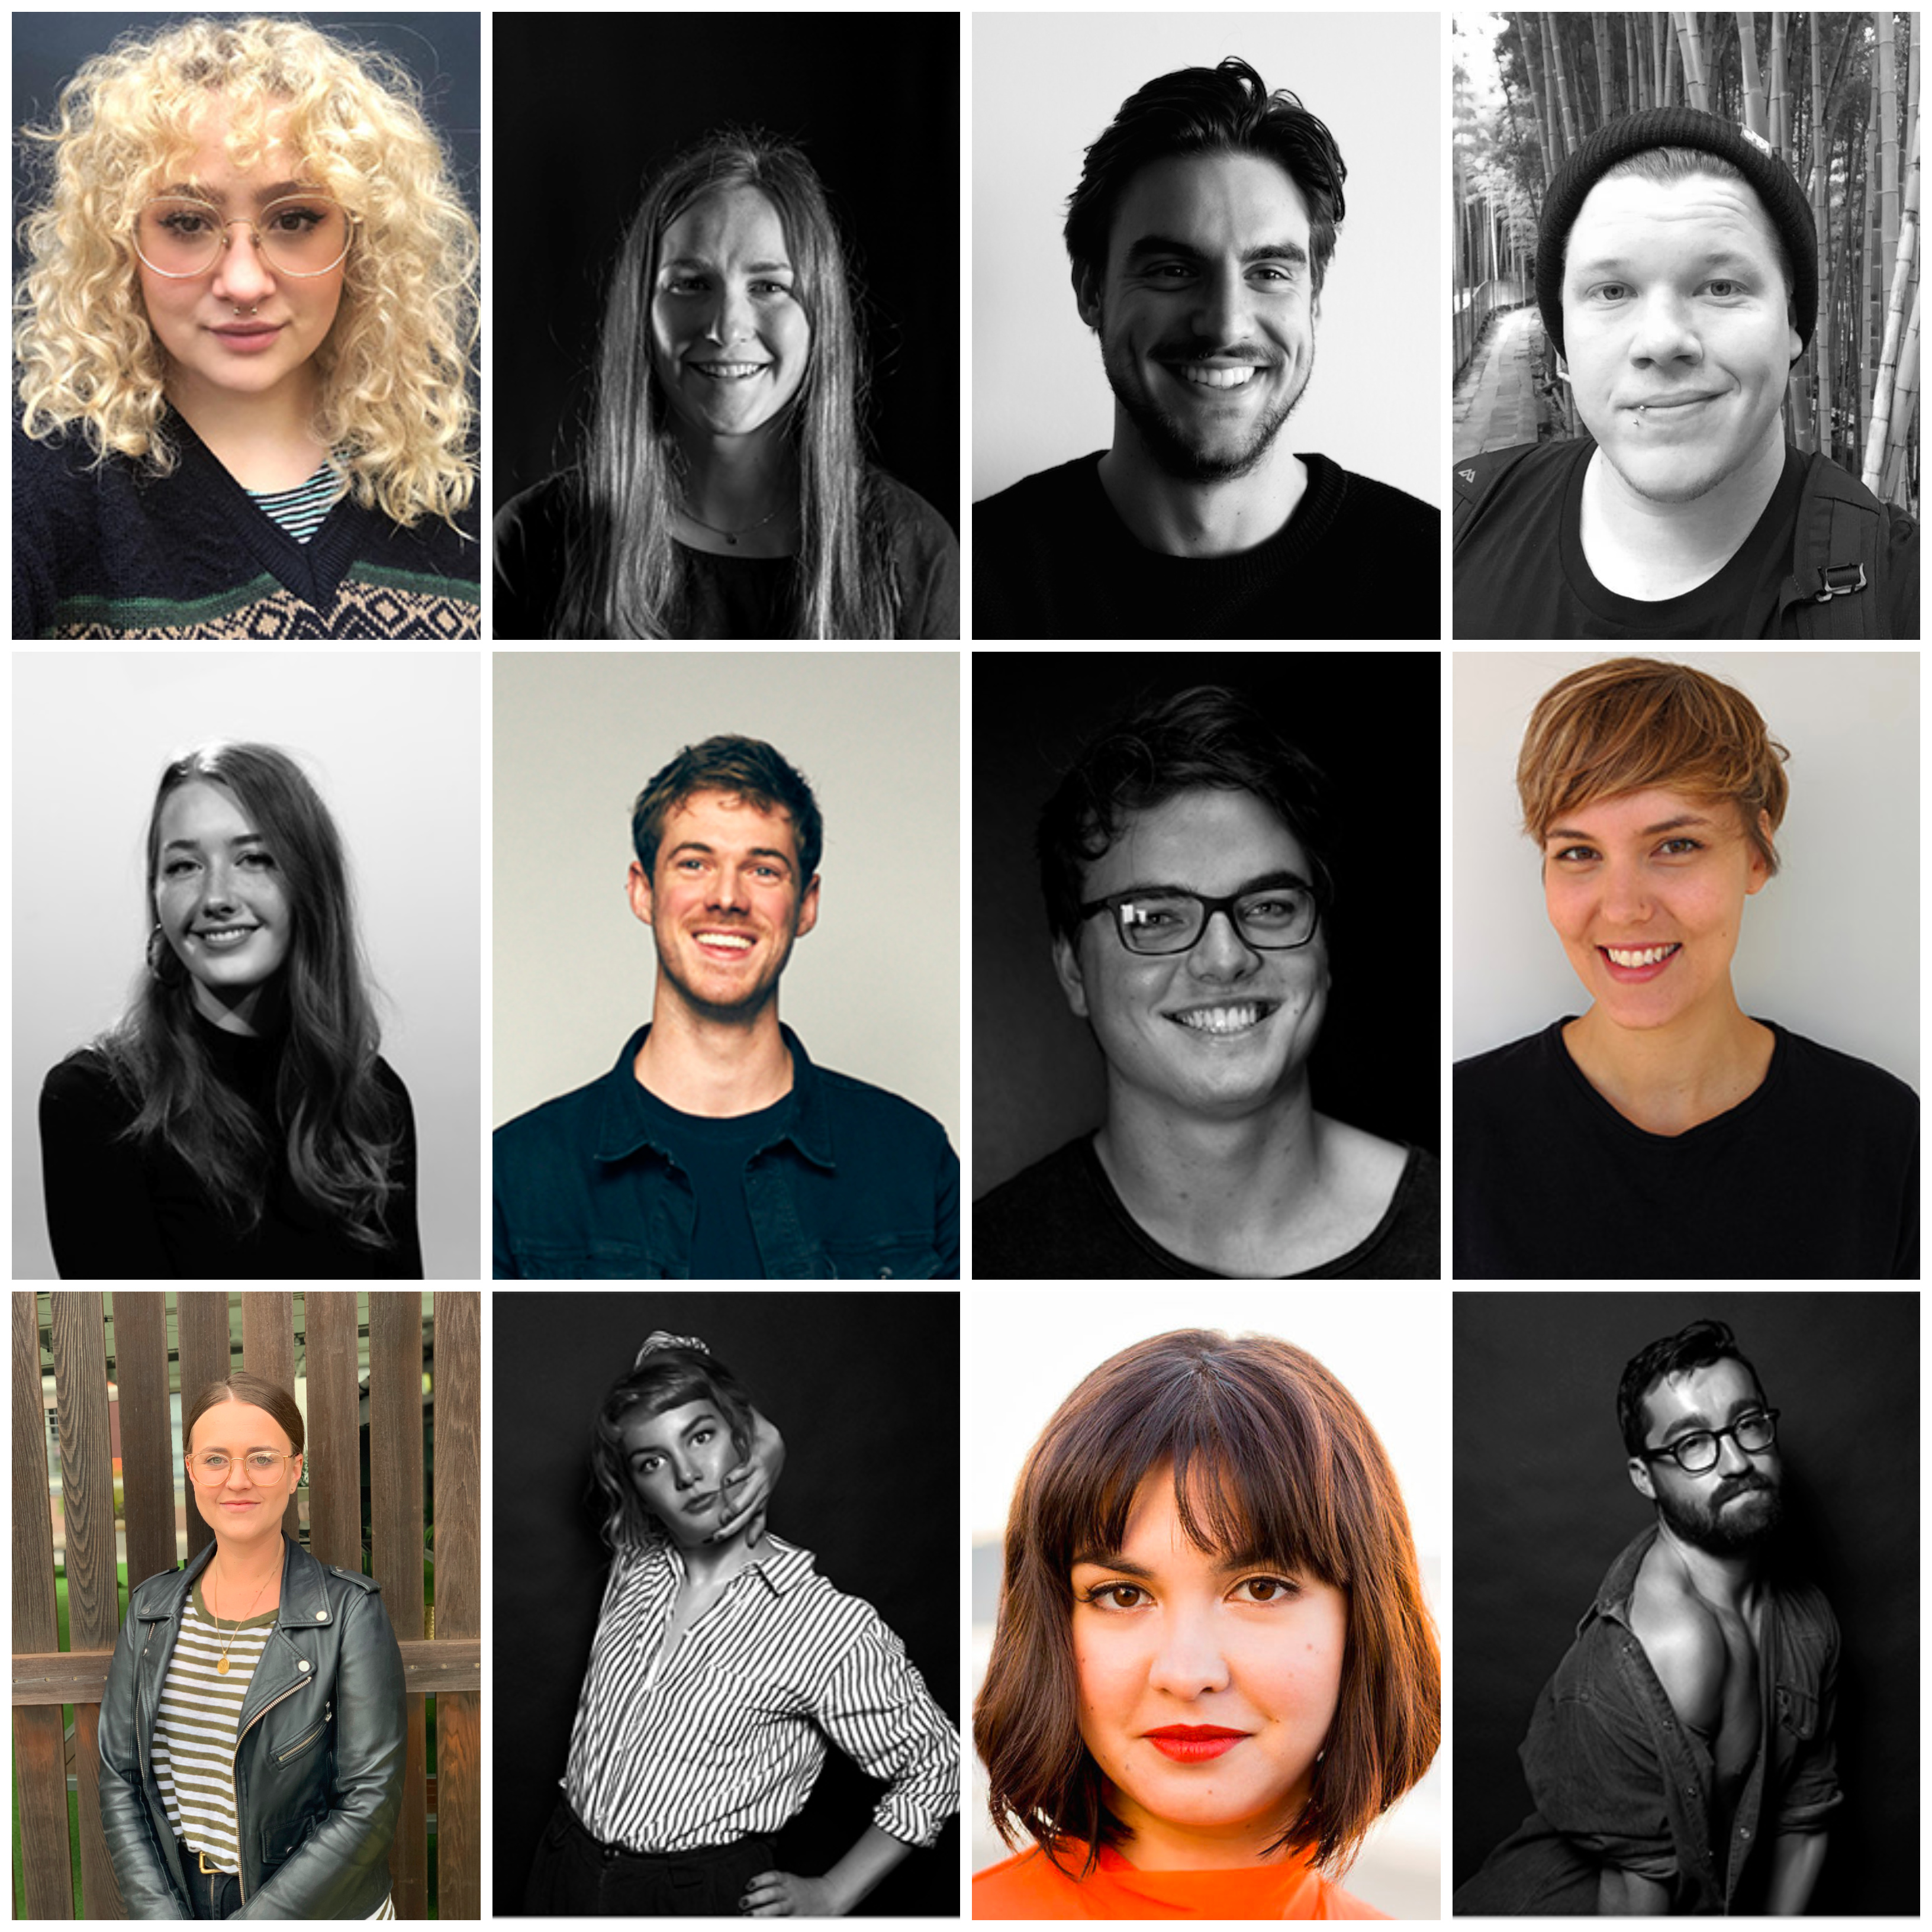 Meet the 12 Young Creatives that will Represent Australia and NZ at LIA Creative LIAisons 2019